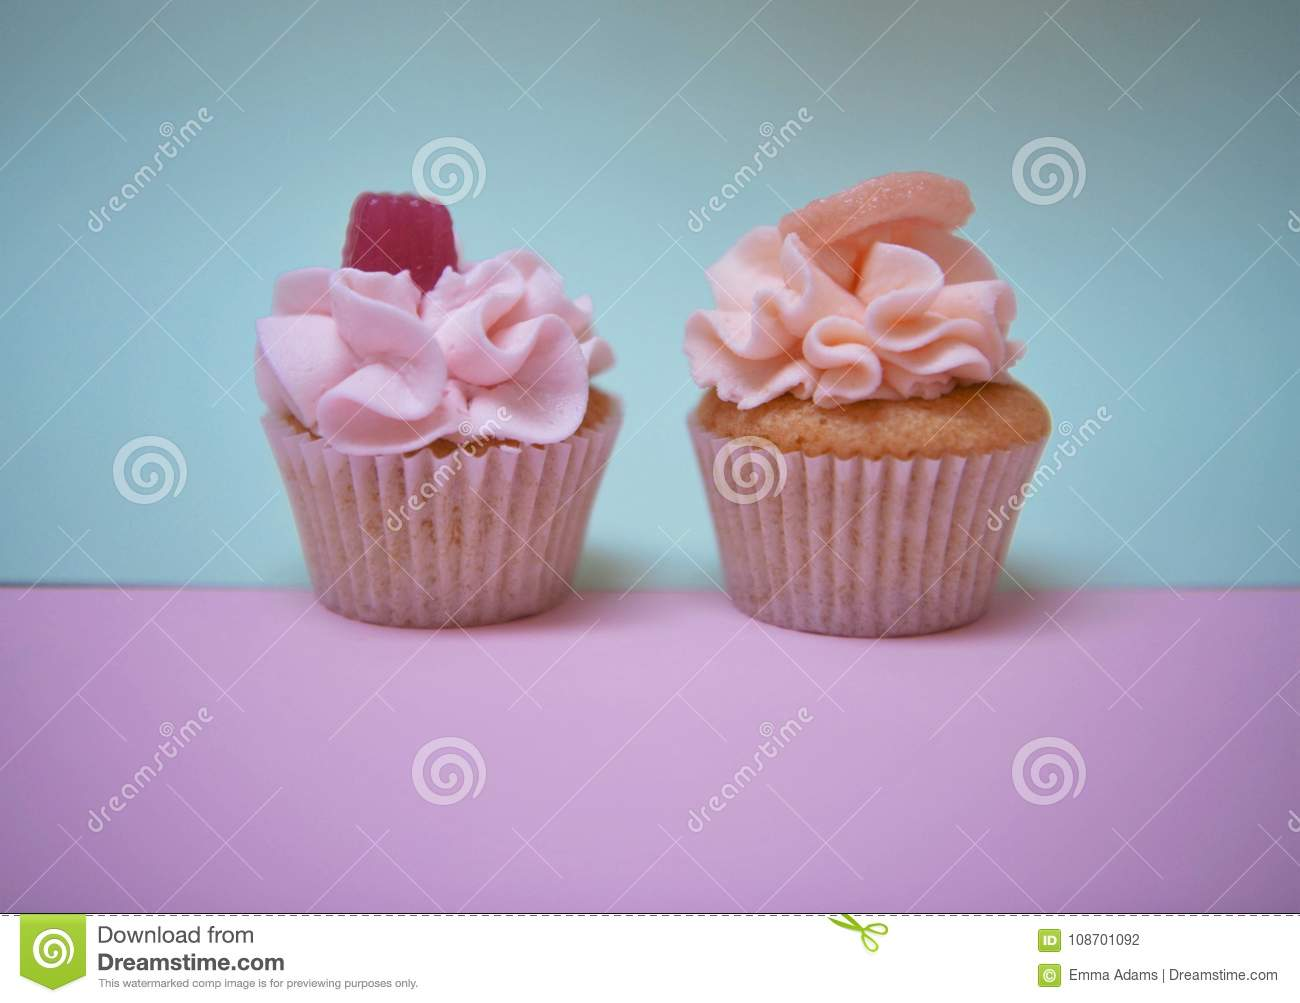 Food Photography Of Home Made Cupcakes With Pink Strawberry Flavor